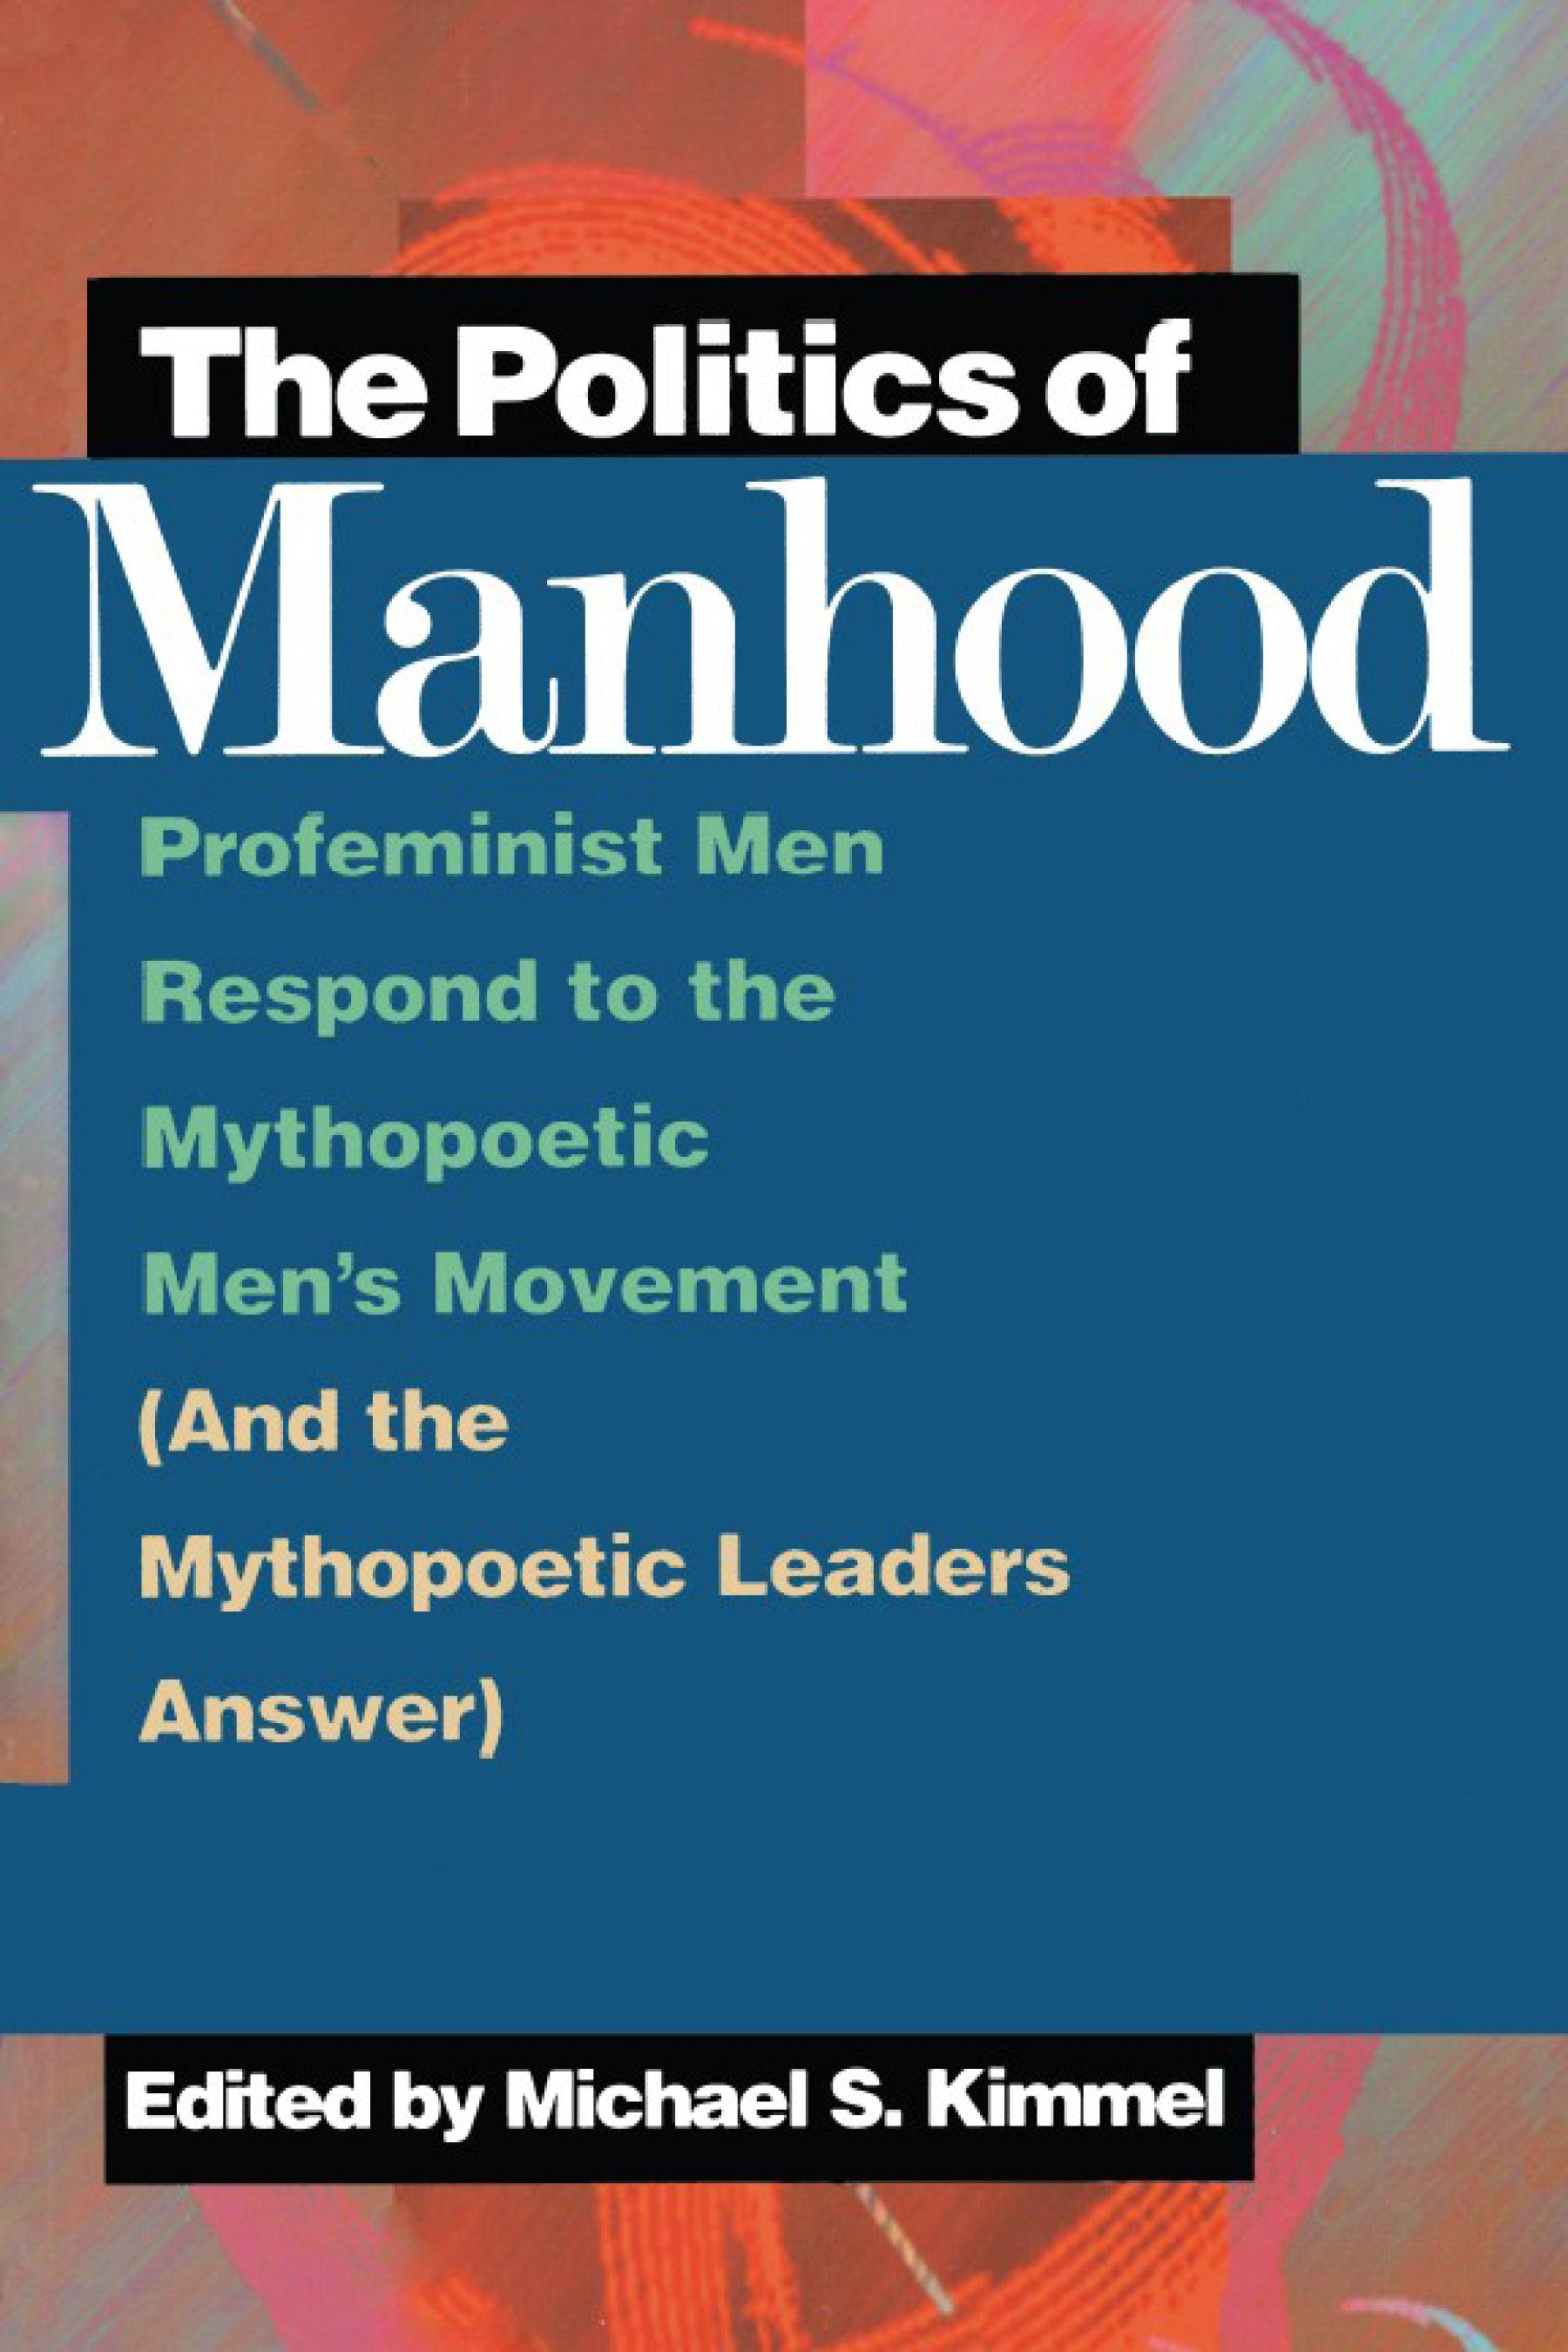 Politics of Manhood, The: Profeminist Men Respond to the Mythopoetic Men's Movement (And the Mythopoetic Leaders Answer) EB9781439901465